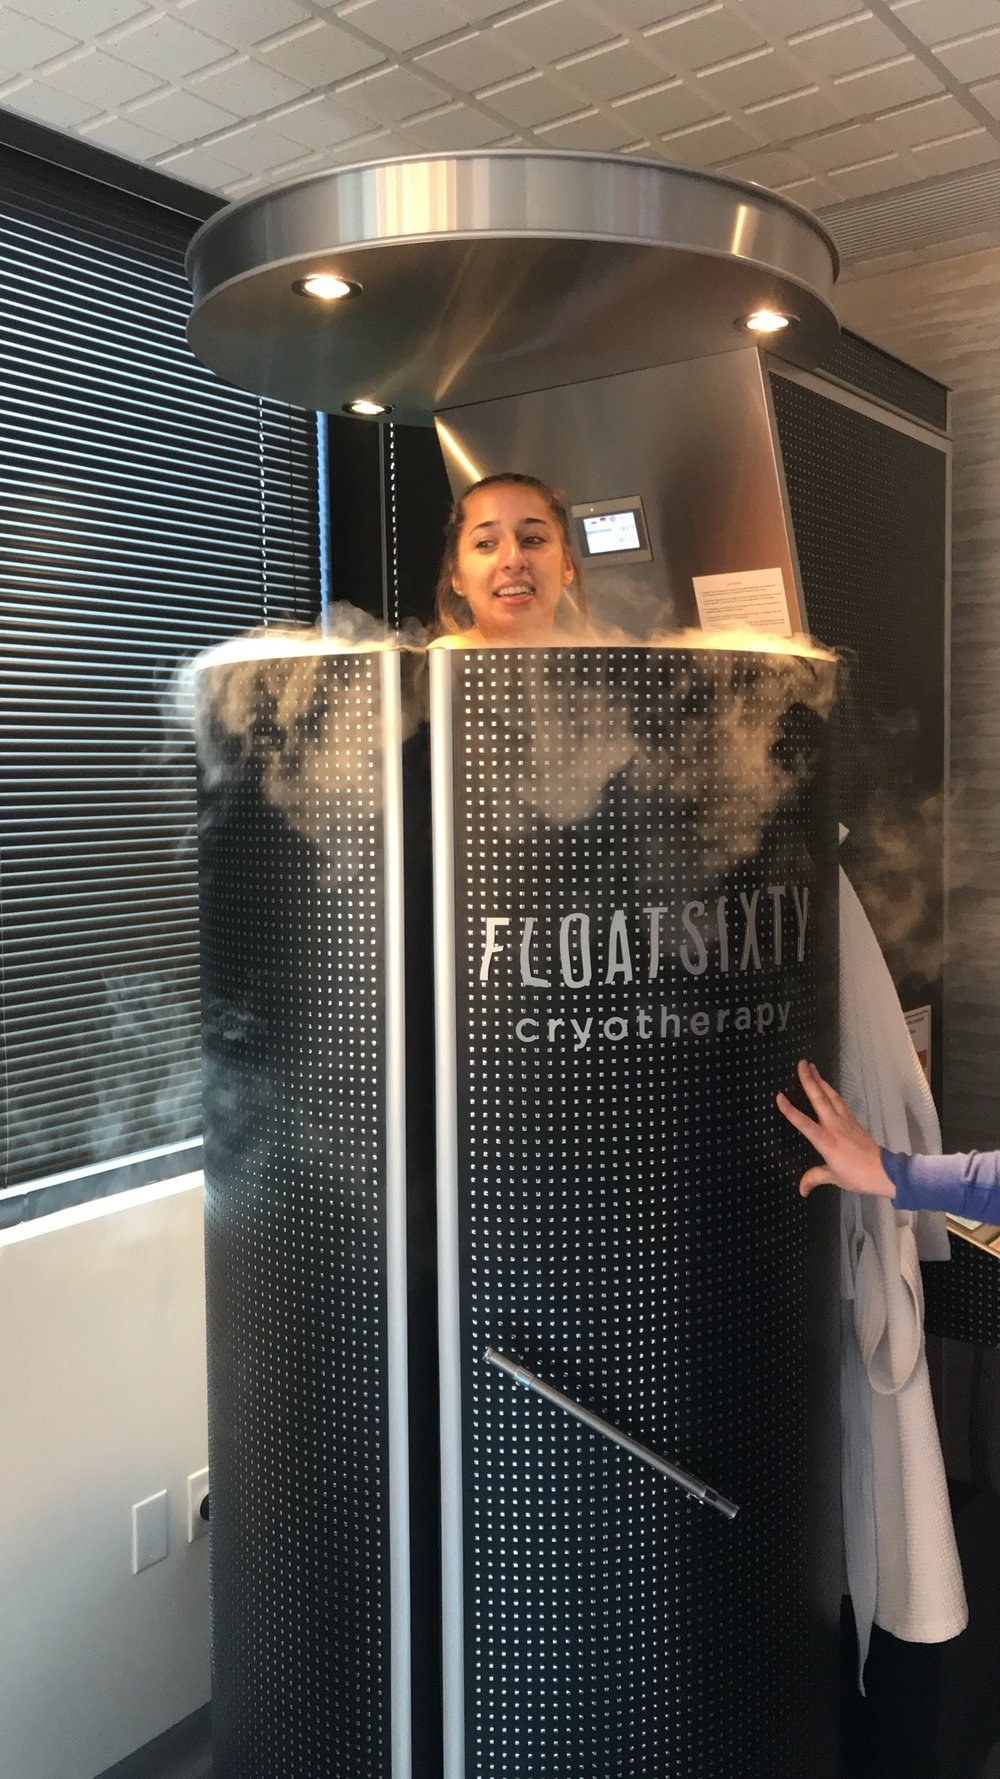 WHOLE BODY & LOCALIZED CRYOTHERAPY - ONLY AVAILABLE AT FLOAT SIXTY NORTHWEST INDIANA$40 FOR FIRST TIME CRYOTHERAPY SESSIONS. 2-3 MINUTES FOR WHOLE BODY AND 10-16 MINUTES FOR LOCALIZED CRYO TREATMENT ON SPECIFIC AREA OF THE BODY$65 REGULAR PRICE$35-$40 PER SESSION WITH A MEMBERSHIP, PACKAGE OR COMMUNITY PROGRAM CODESPECIAL PROGRAMS FOR VETERANS, FIRST RESPONDERS & STUDENTSVisit our Float Sixty Northwest Indiana store.